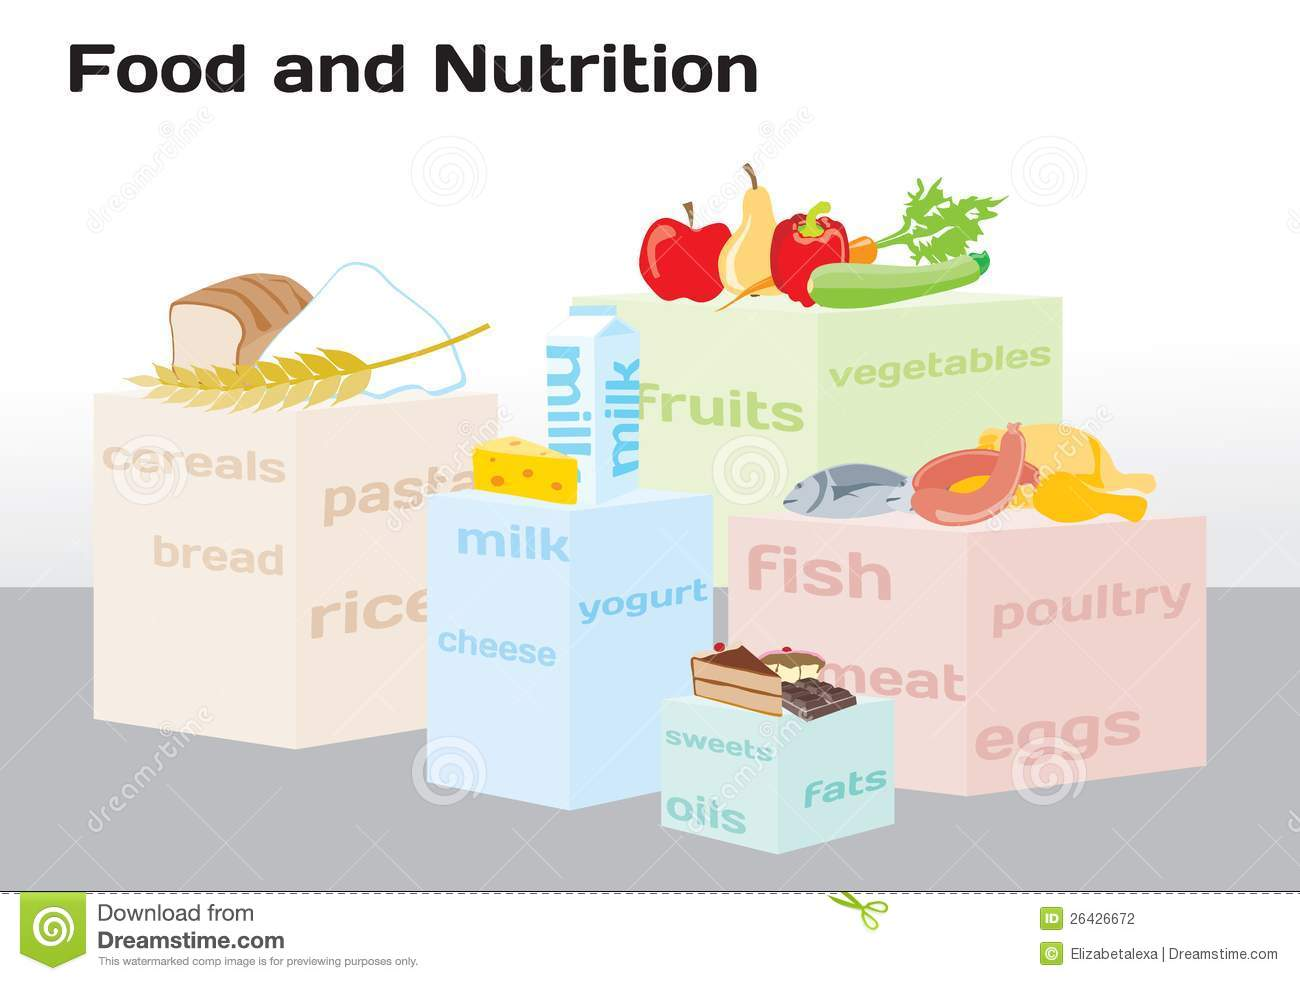 food and nutrition shown in infographic chart